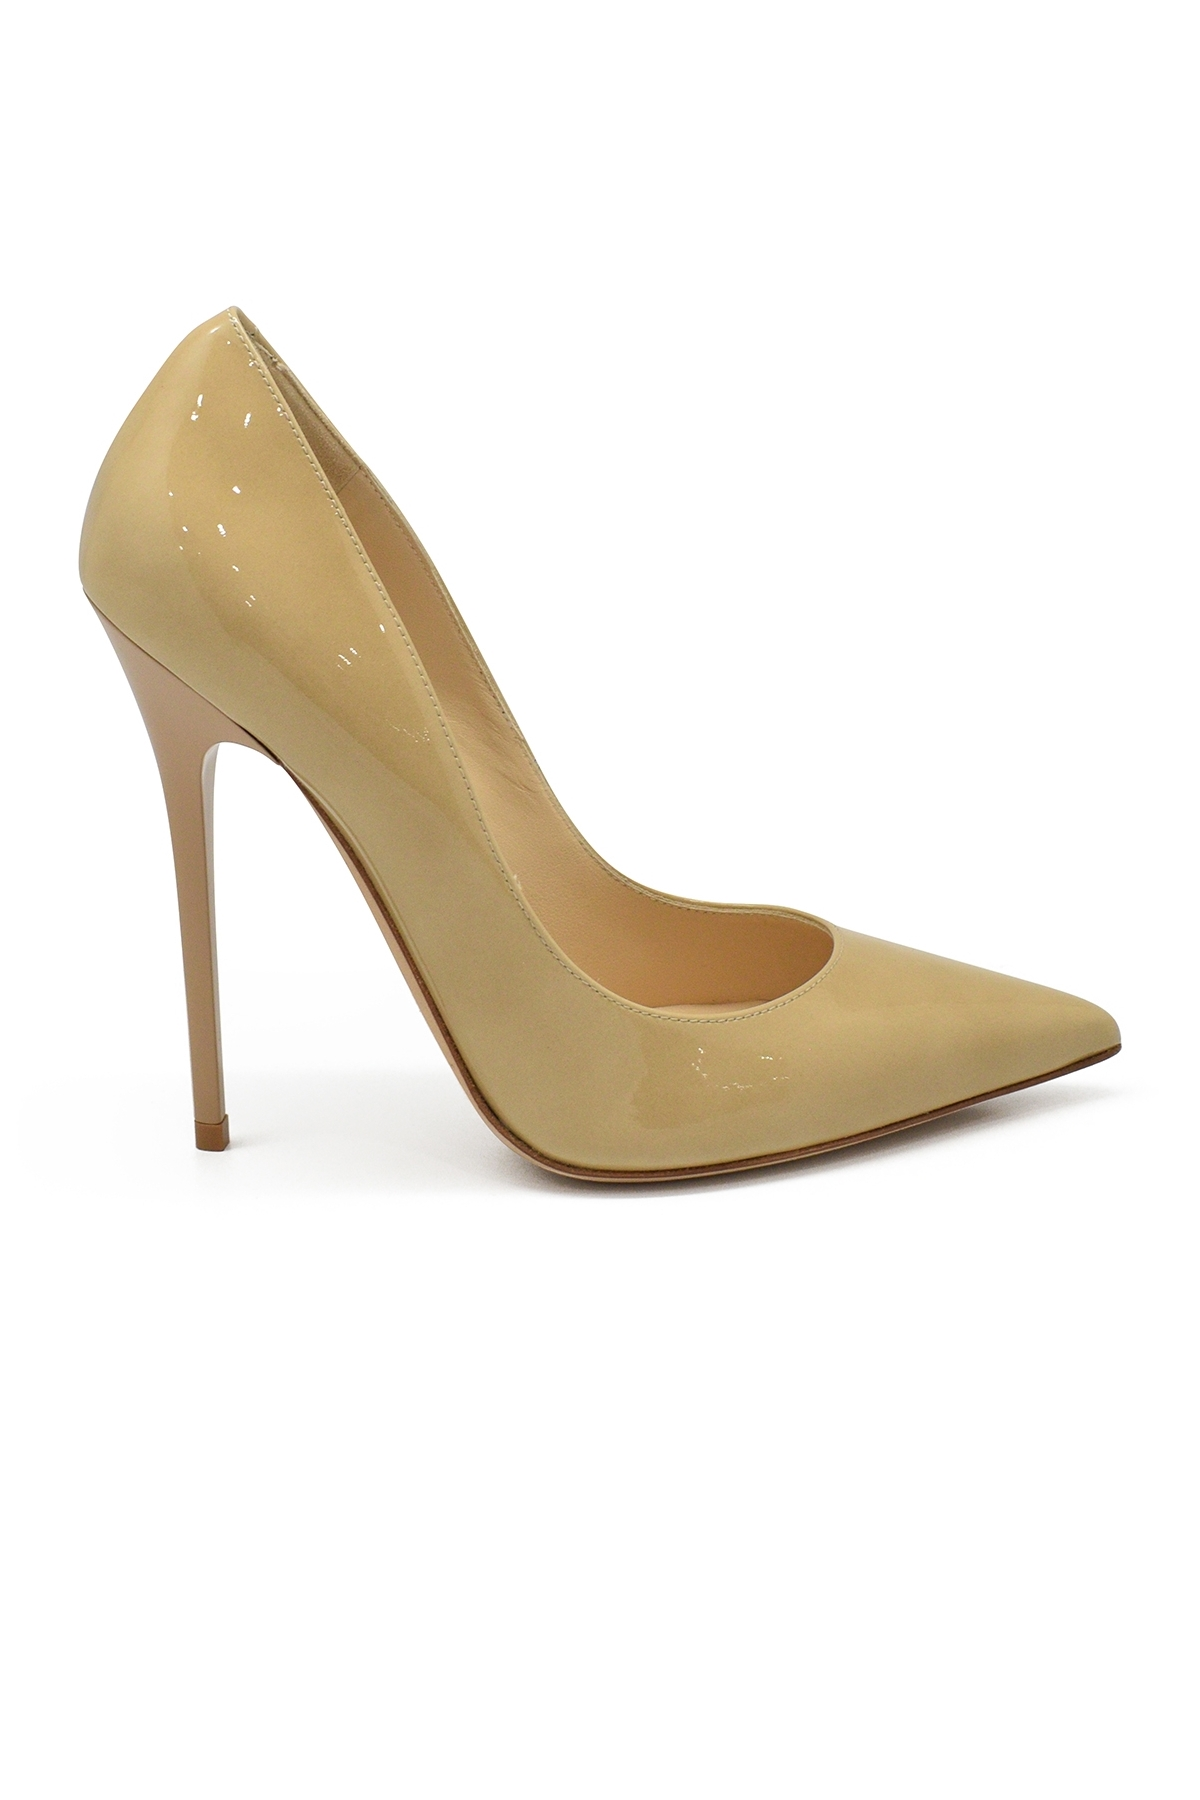 Jimmy Choo Anouk pumps in nude patent